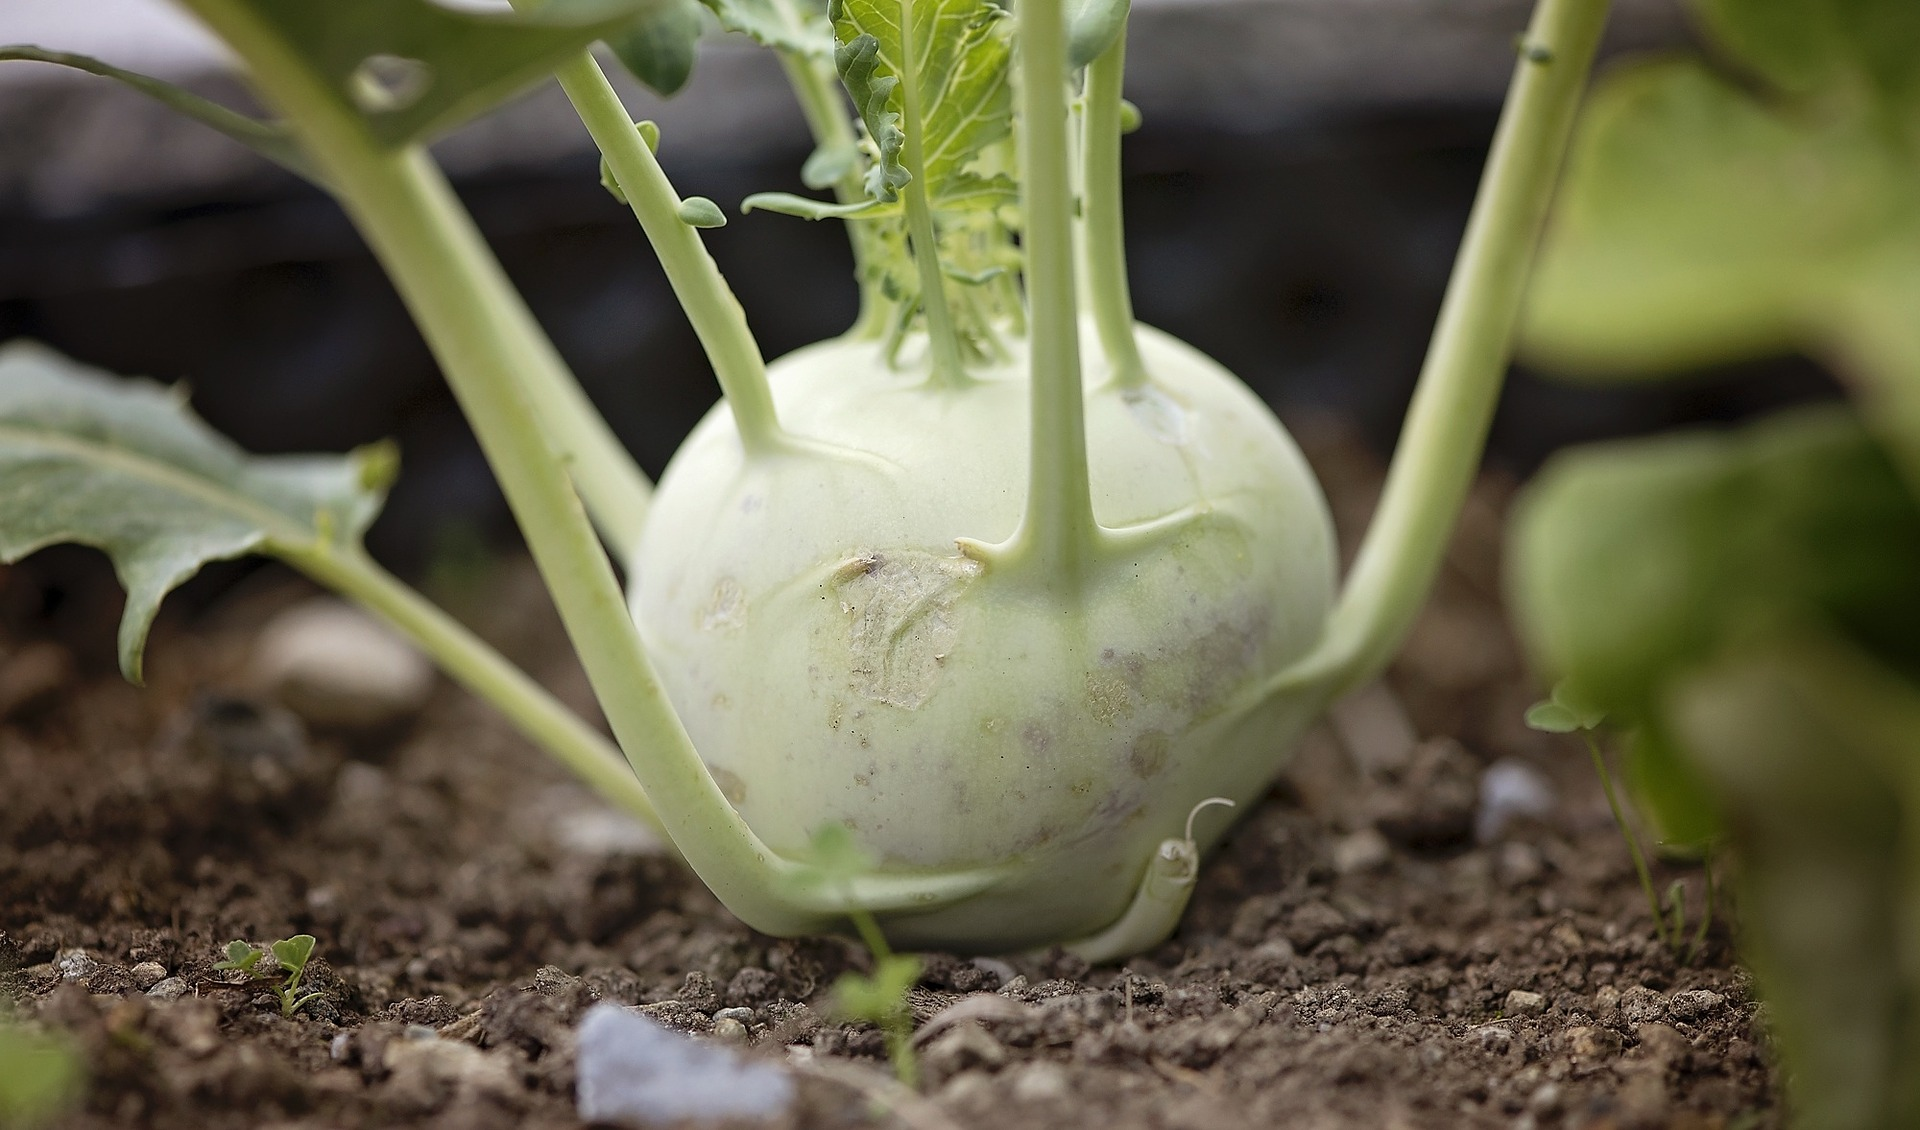 Kohlrabi growing